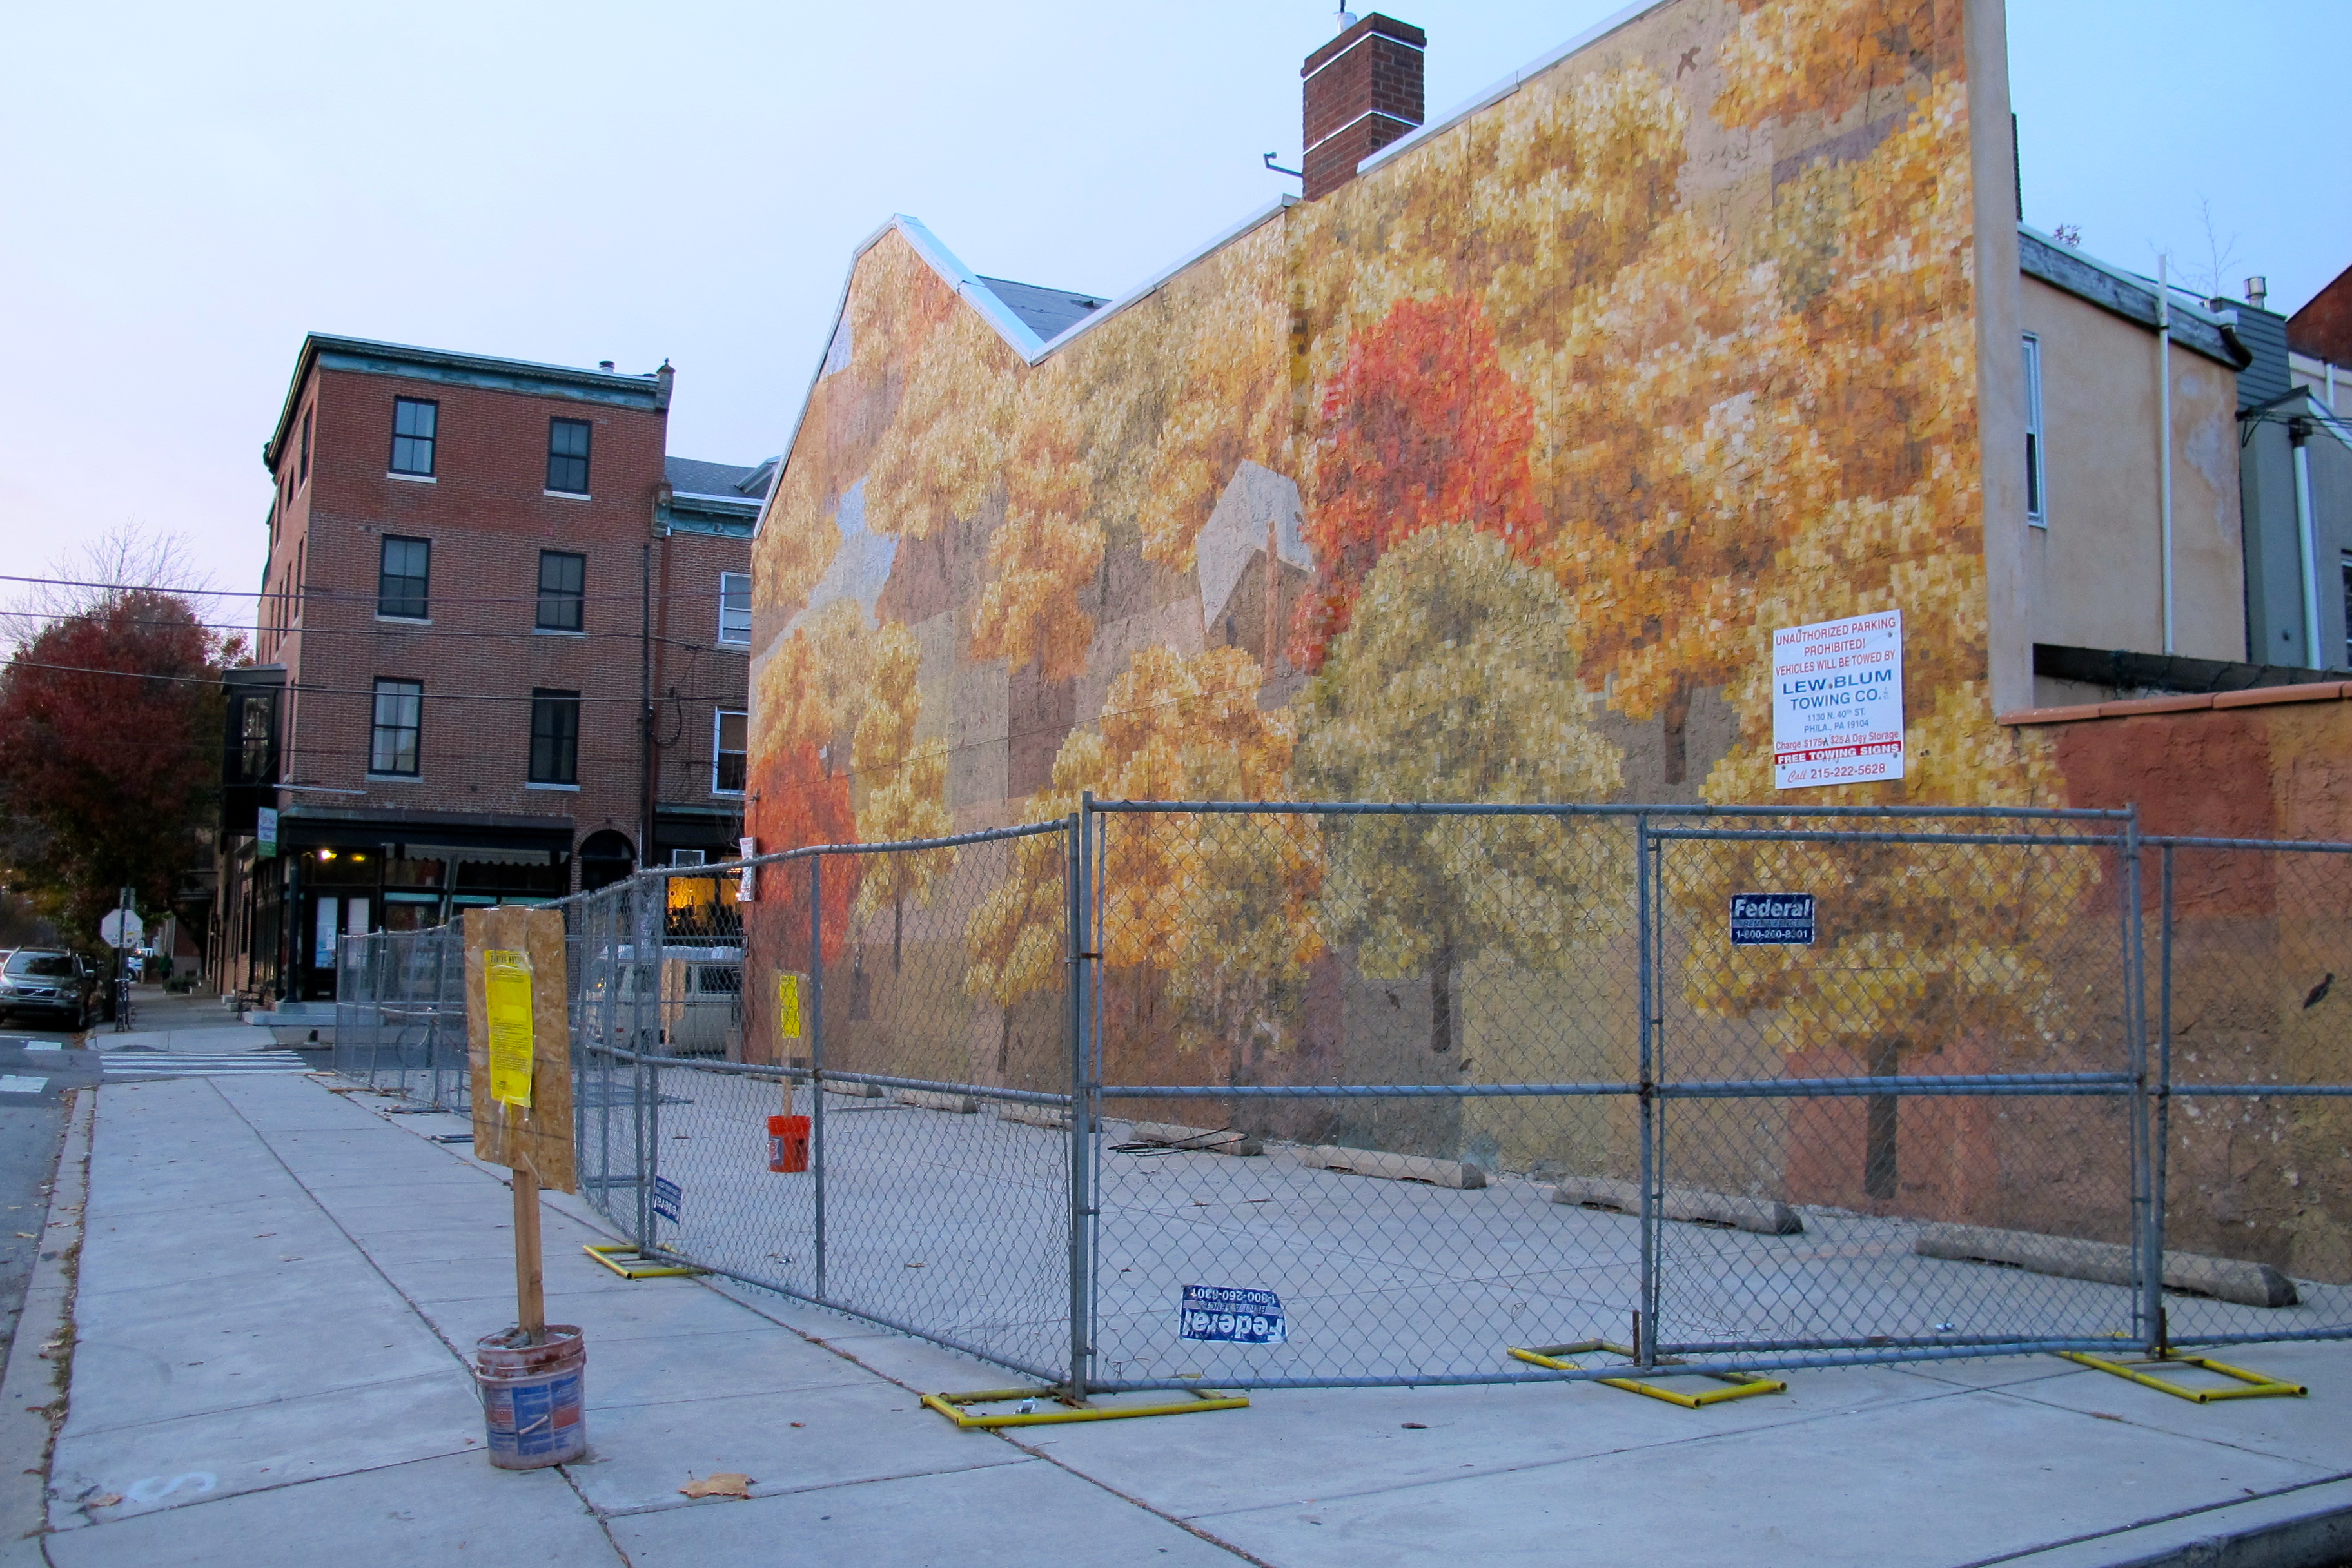 David Guinn's mural at 9th and Bainbridge gets fenced.